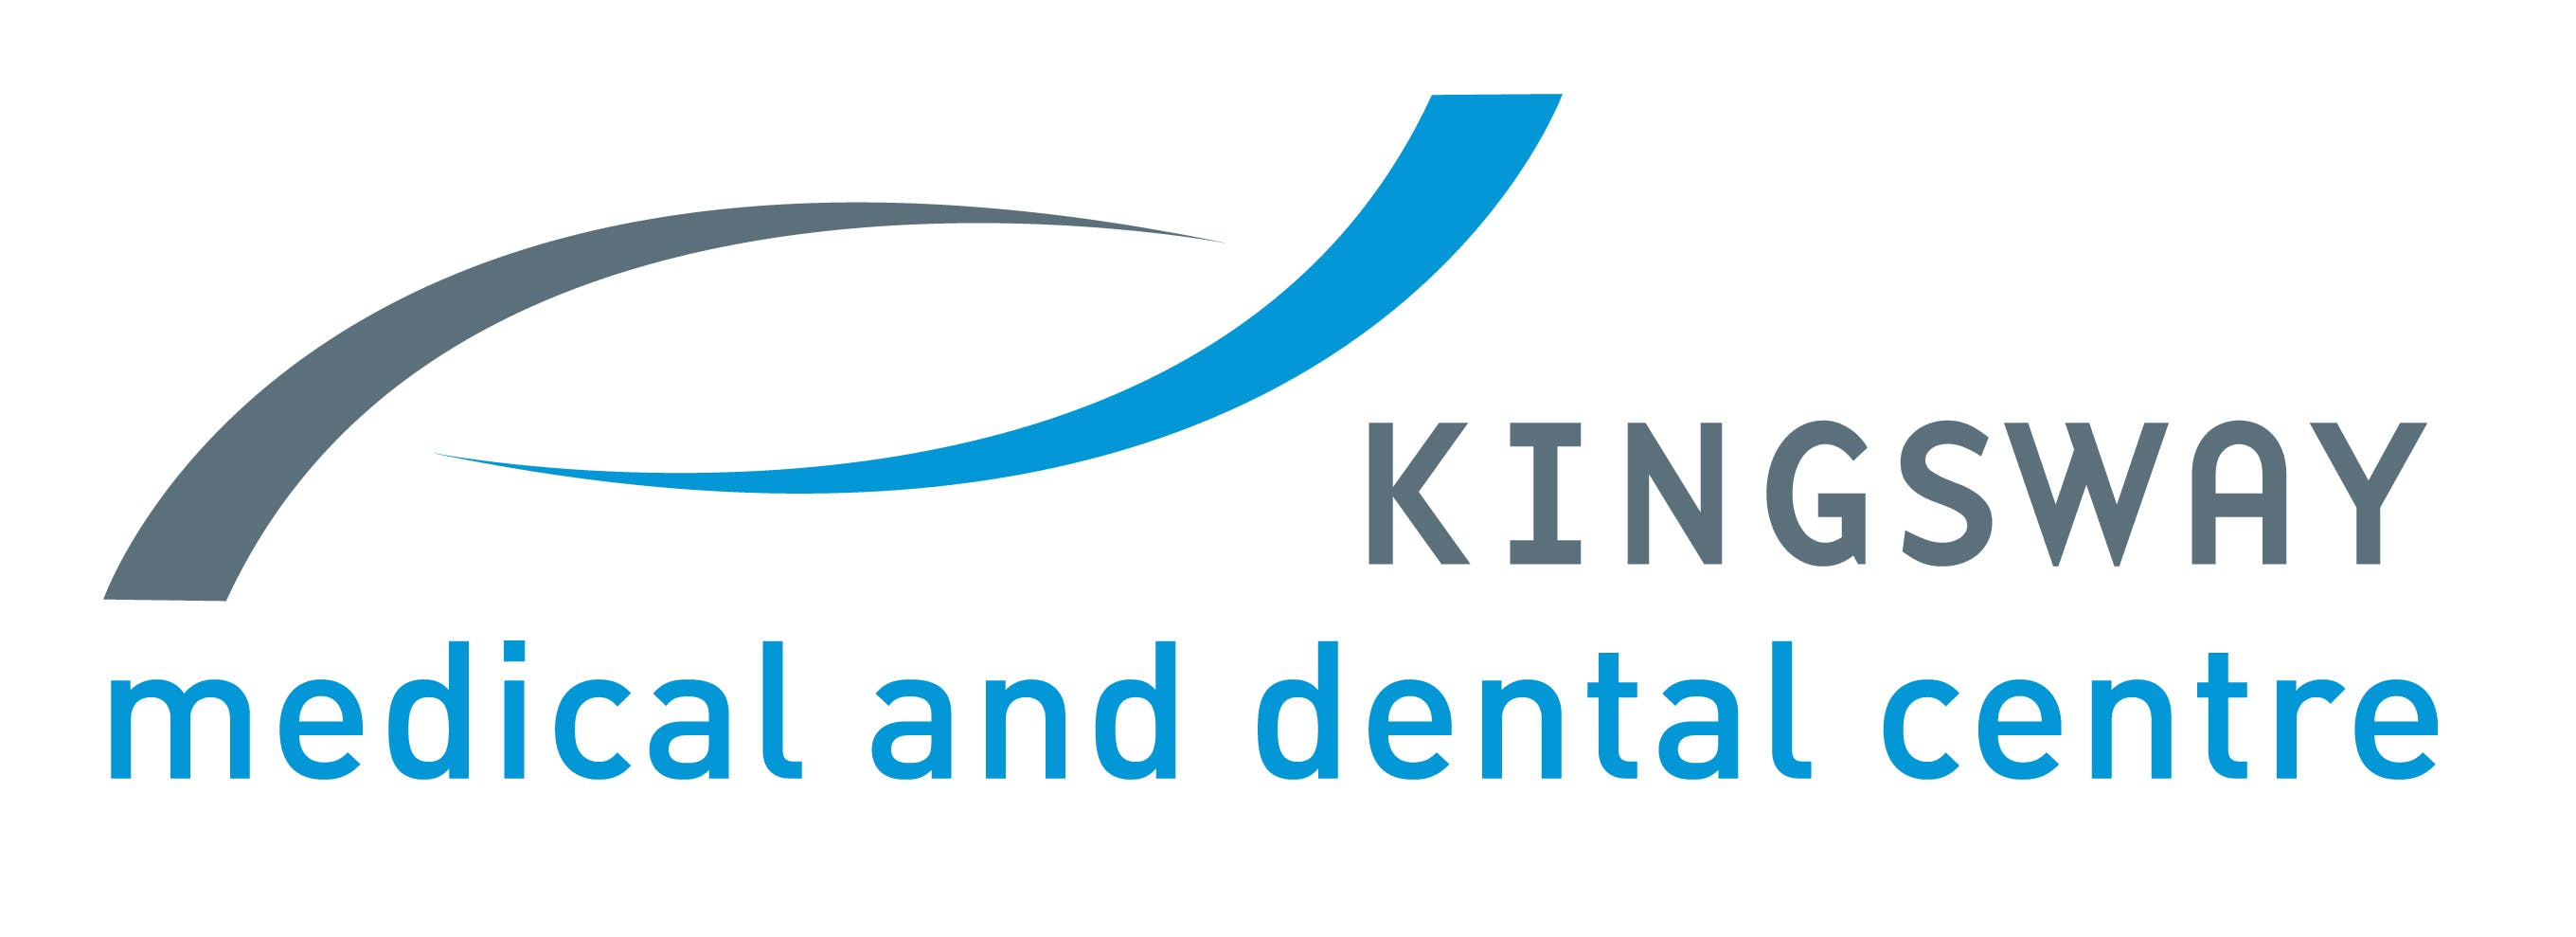 Kingsway Medical and Dental Centre Logo